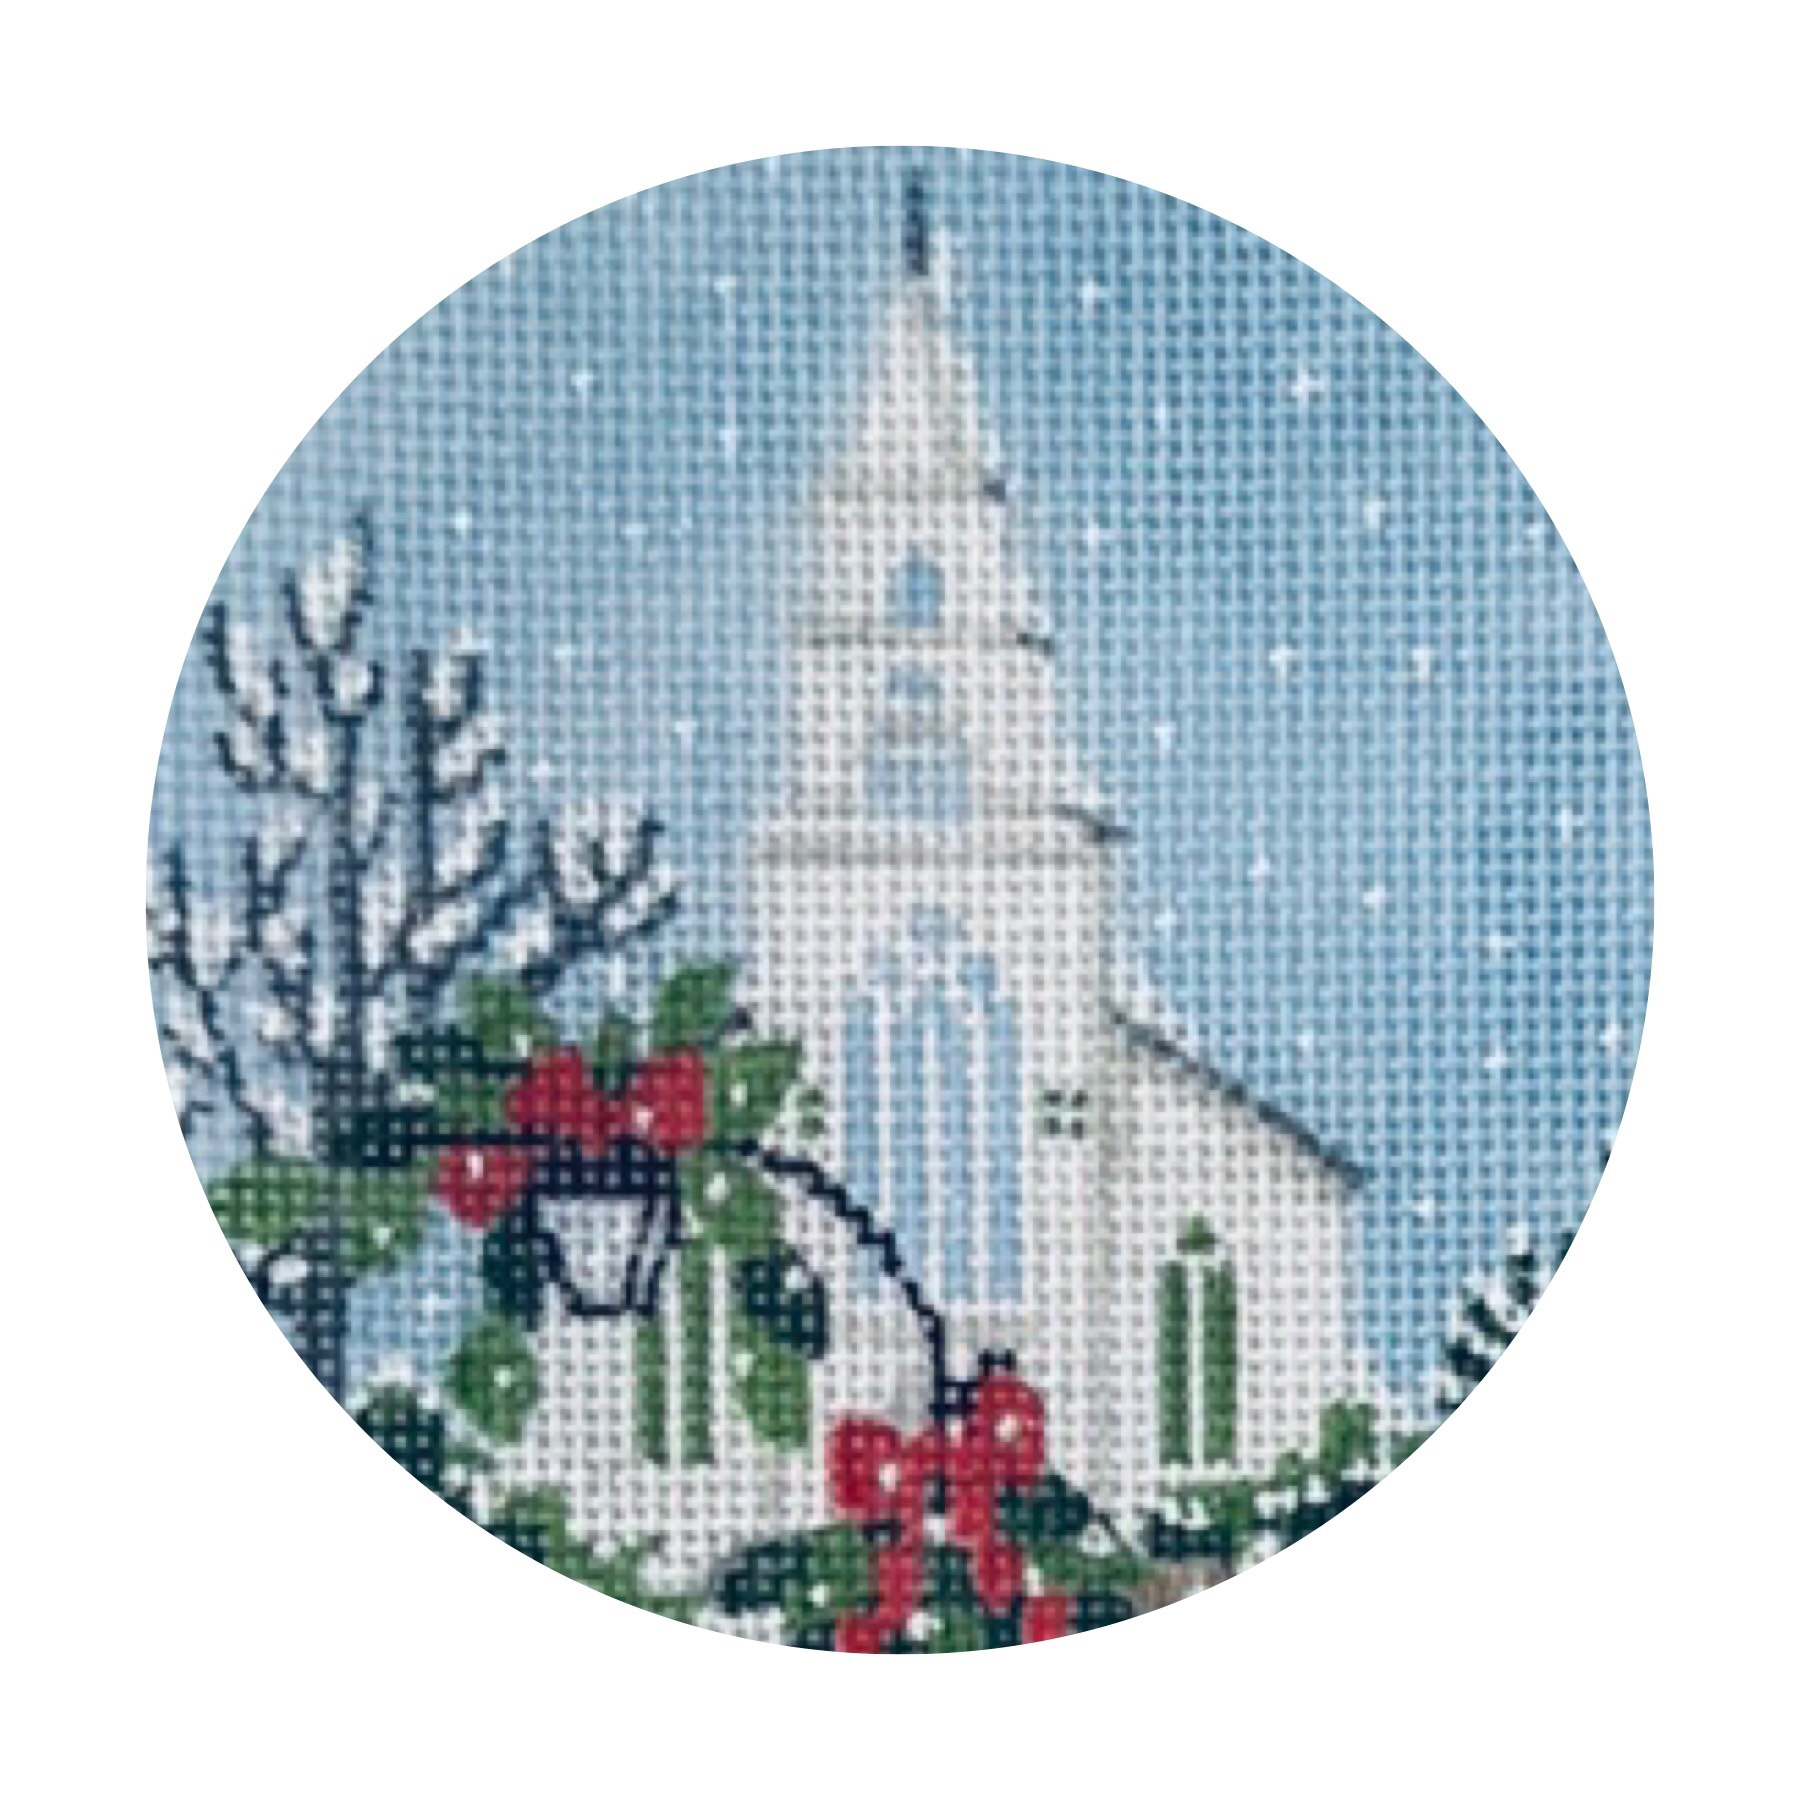 "First Congregational TSG25-I   4"" round on 18 mesh"